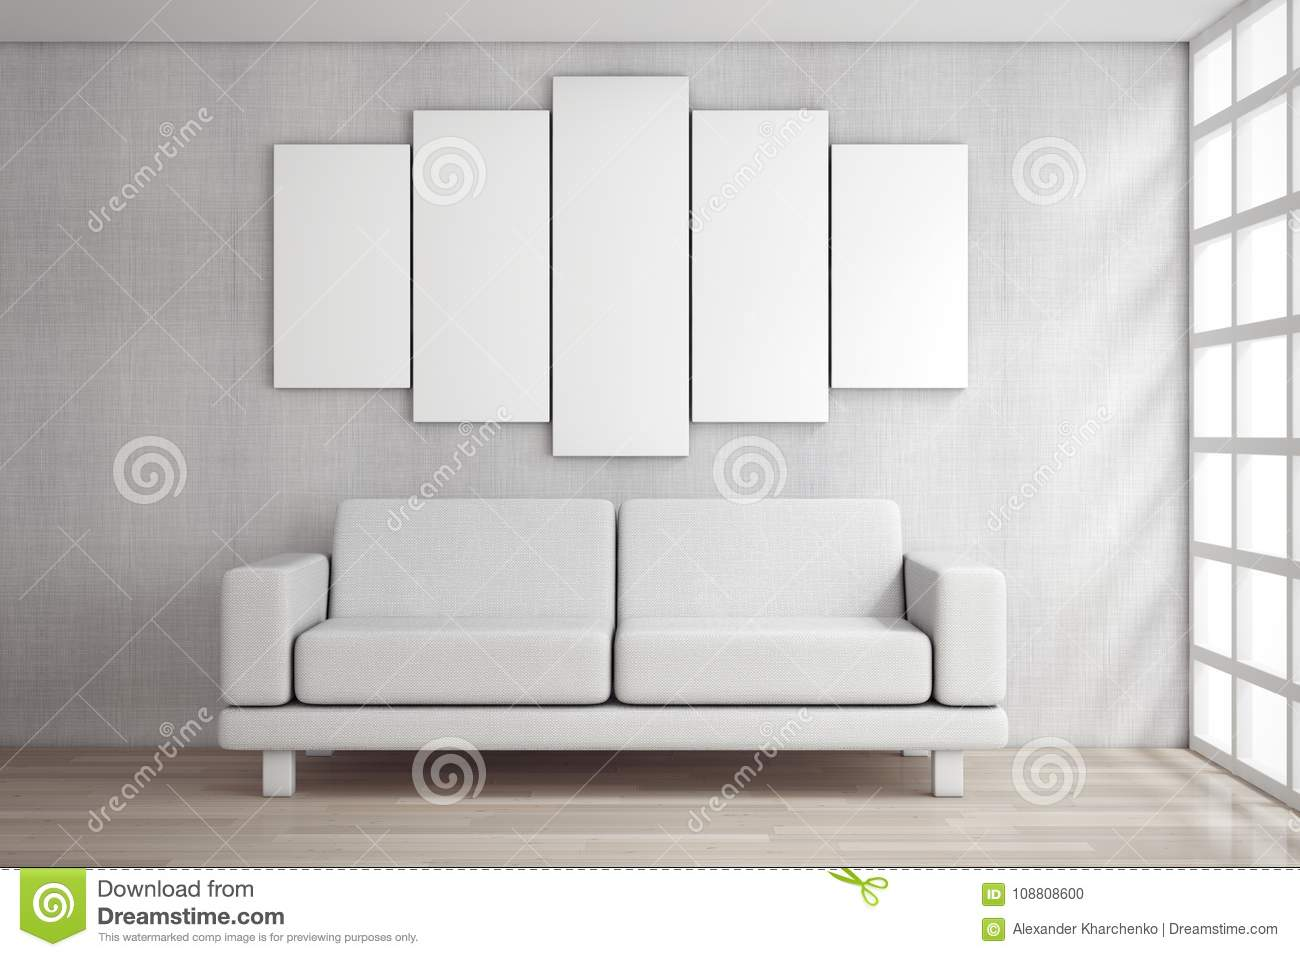 White simple modern sofa furniture under blank white poster in front of brick wall 3d rendering